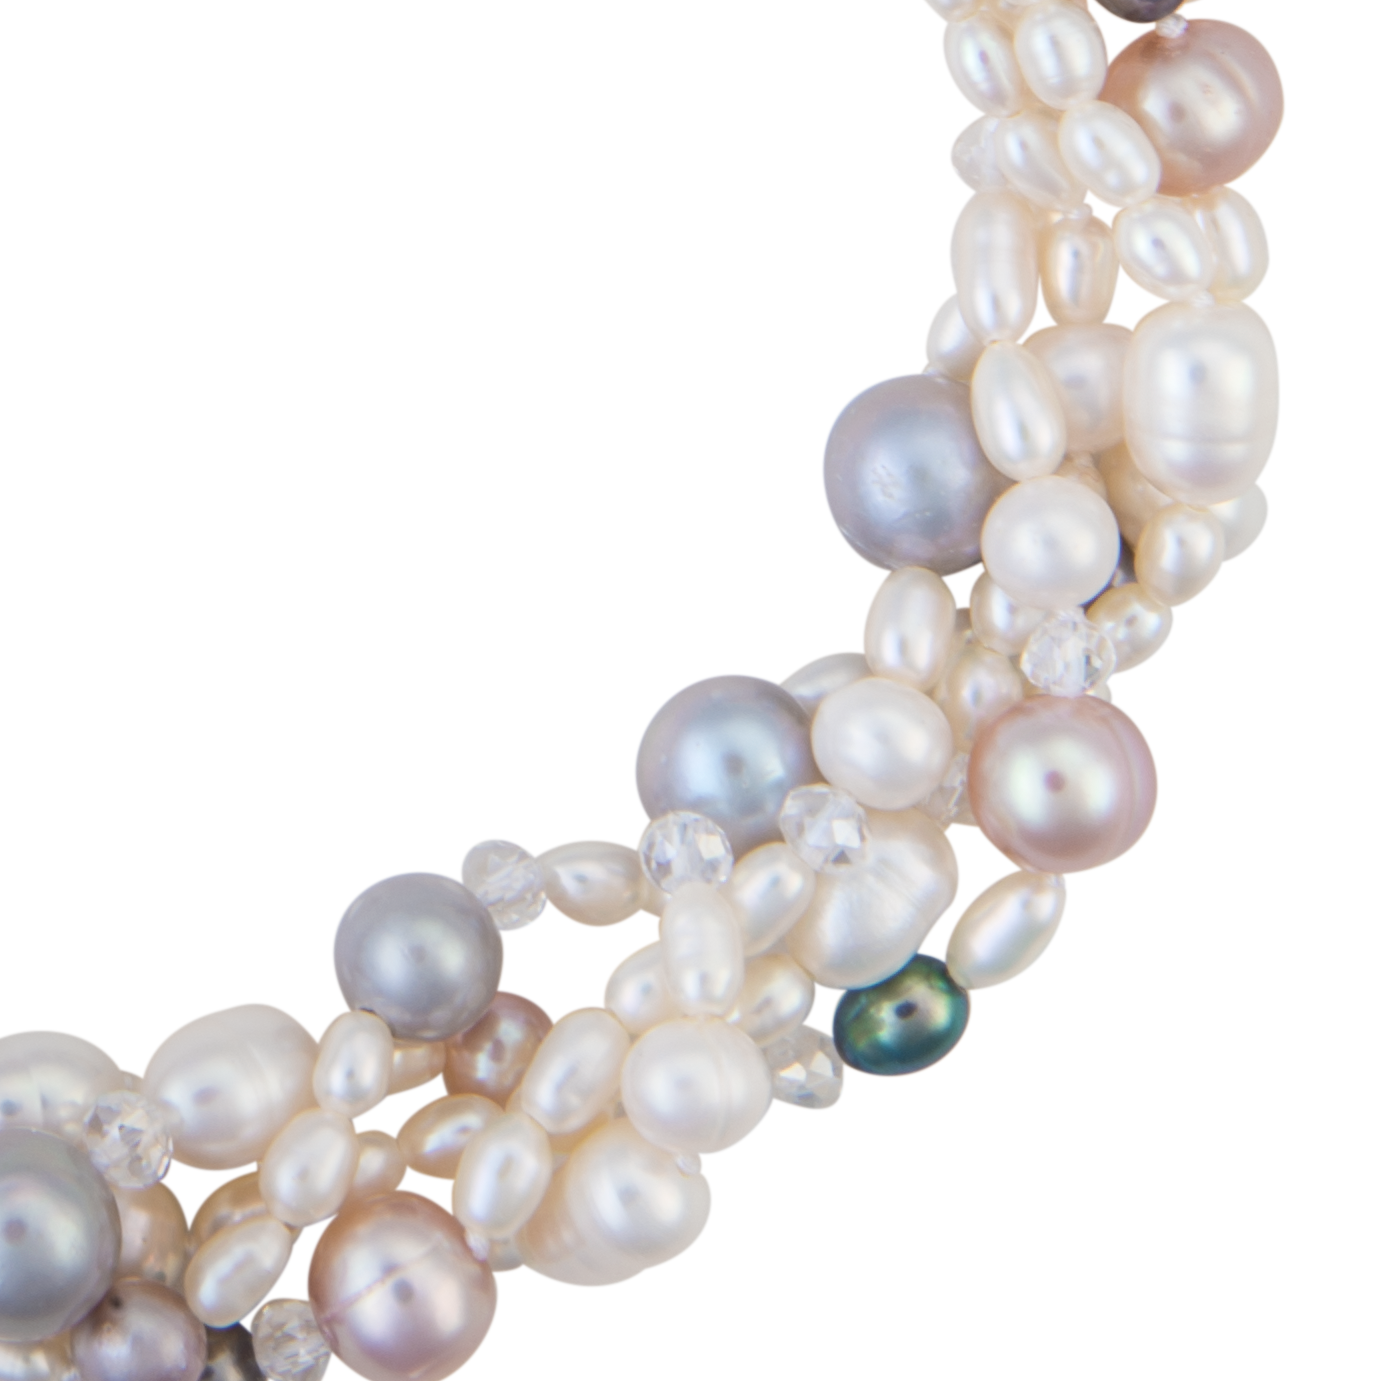 14f6e778b Five-strand multi-colored pearl necklace - Dog House Pearls